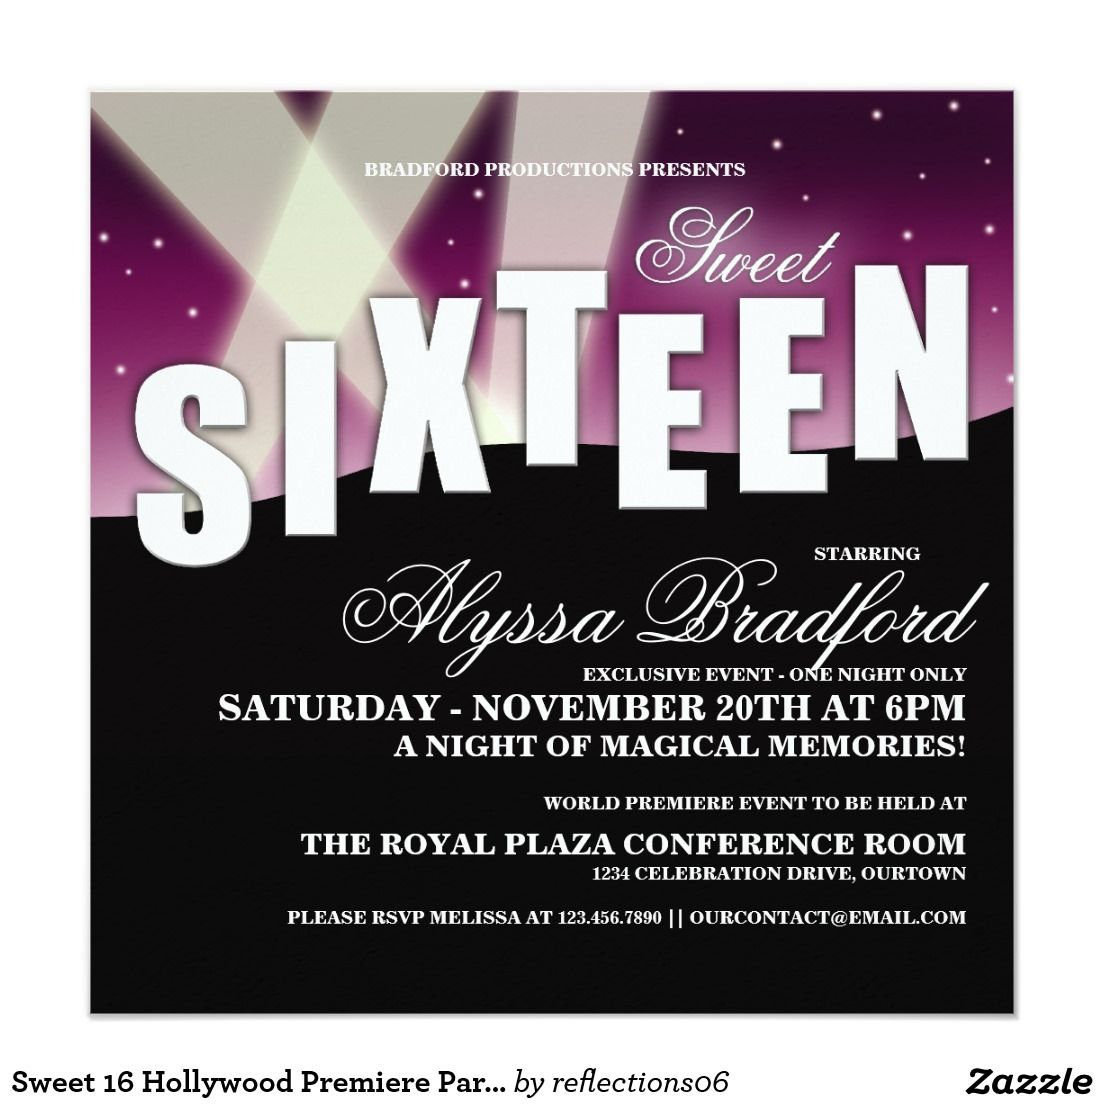 Sweet 16 Hollywood Premiere Party Invitations | Hollywood Sweet 16 ...